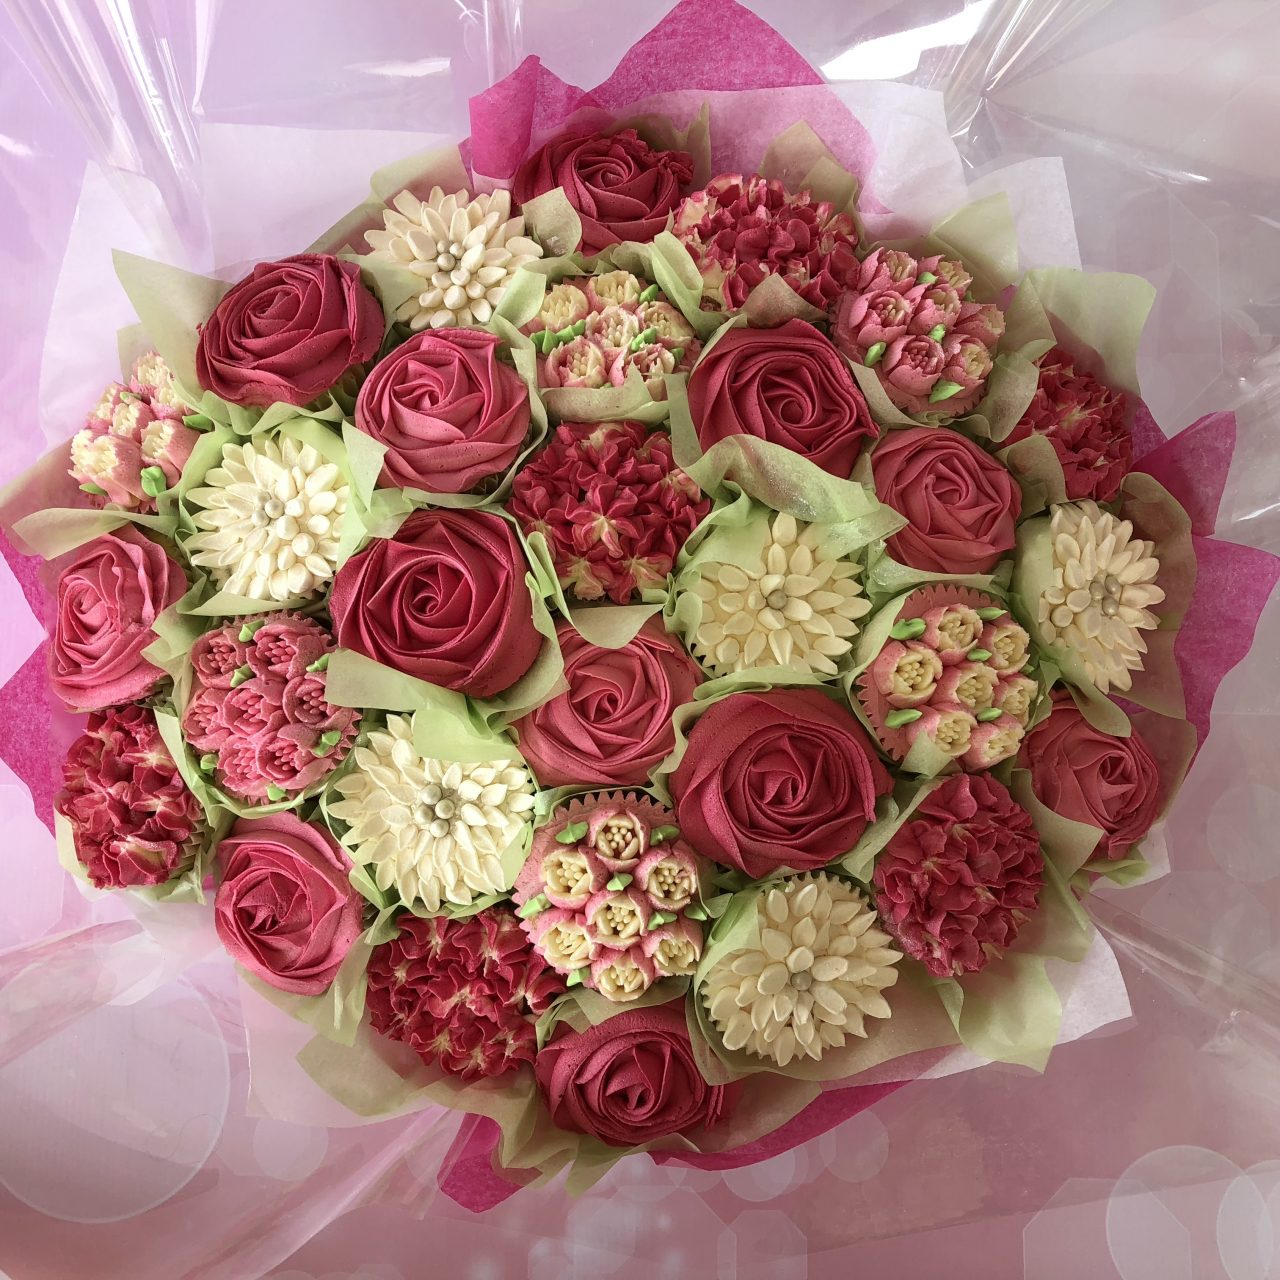 Cupcake bouquets hayleighs cakery celebrations weddings cupcake bouquets izmirmasajfo